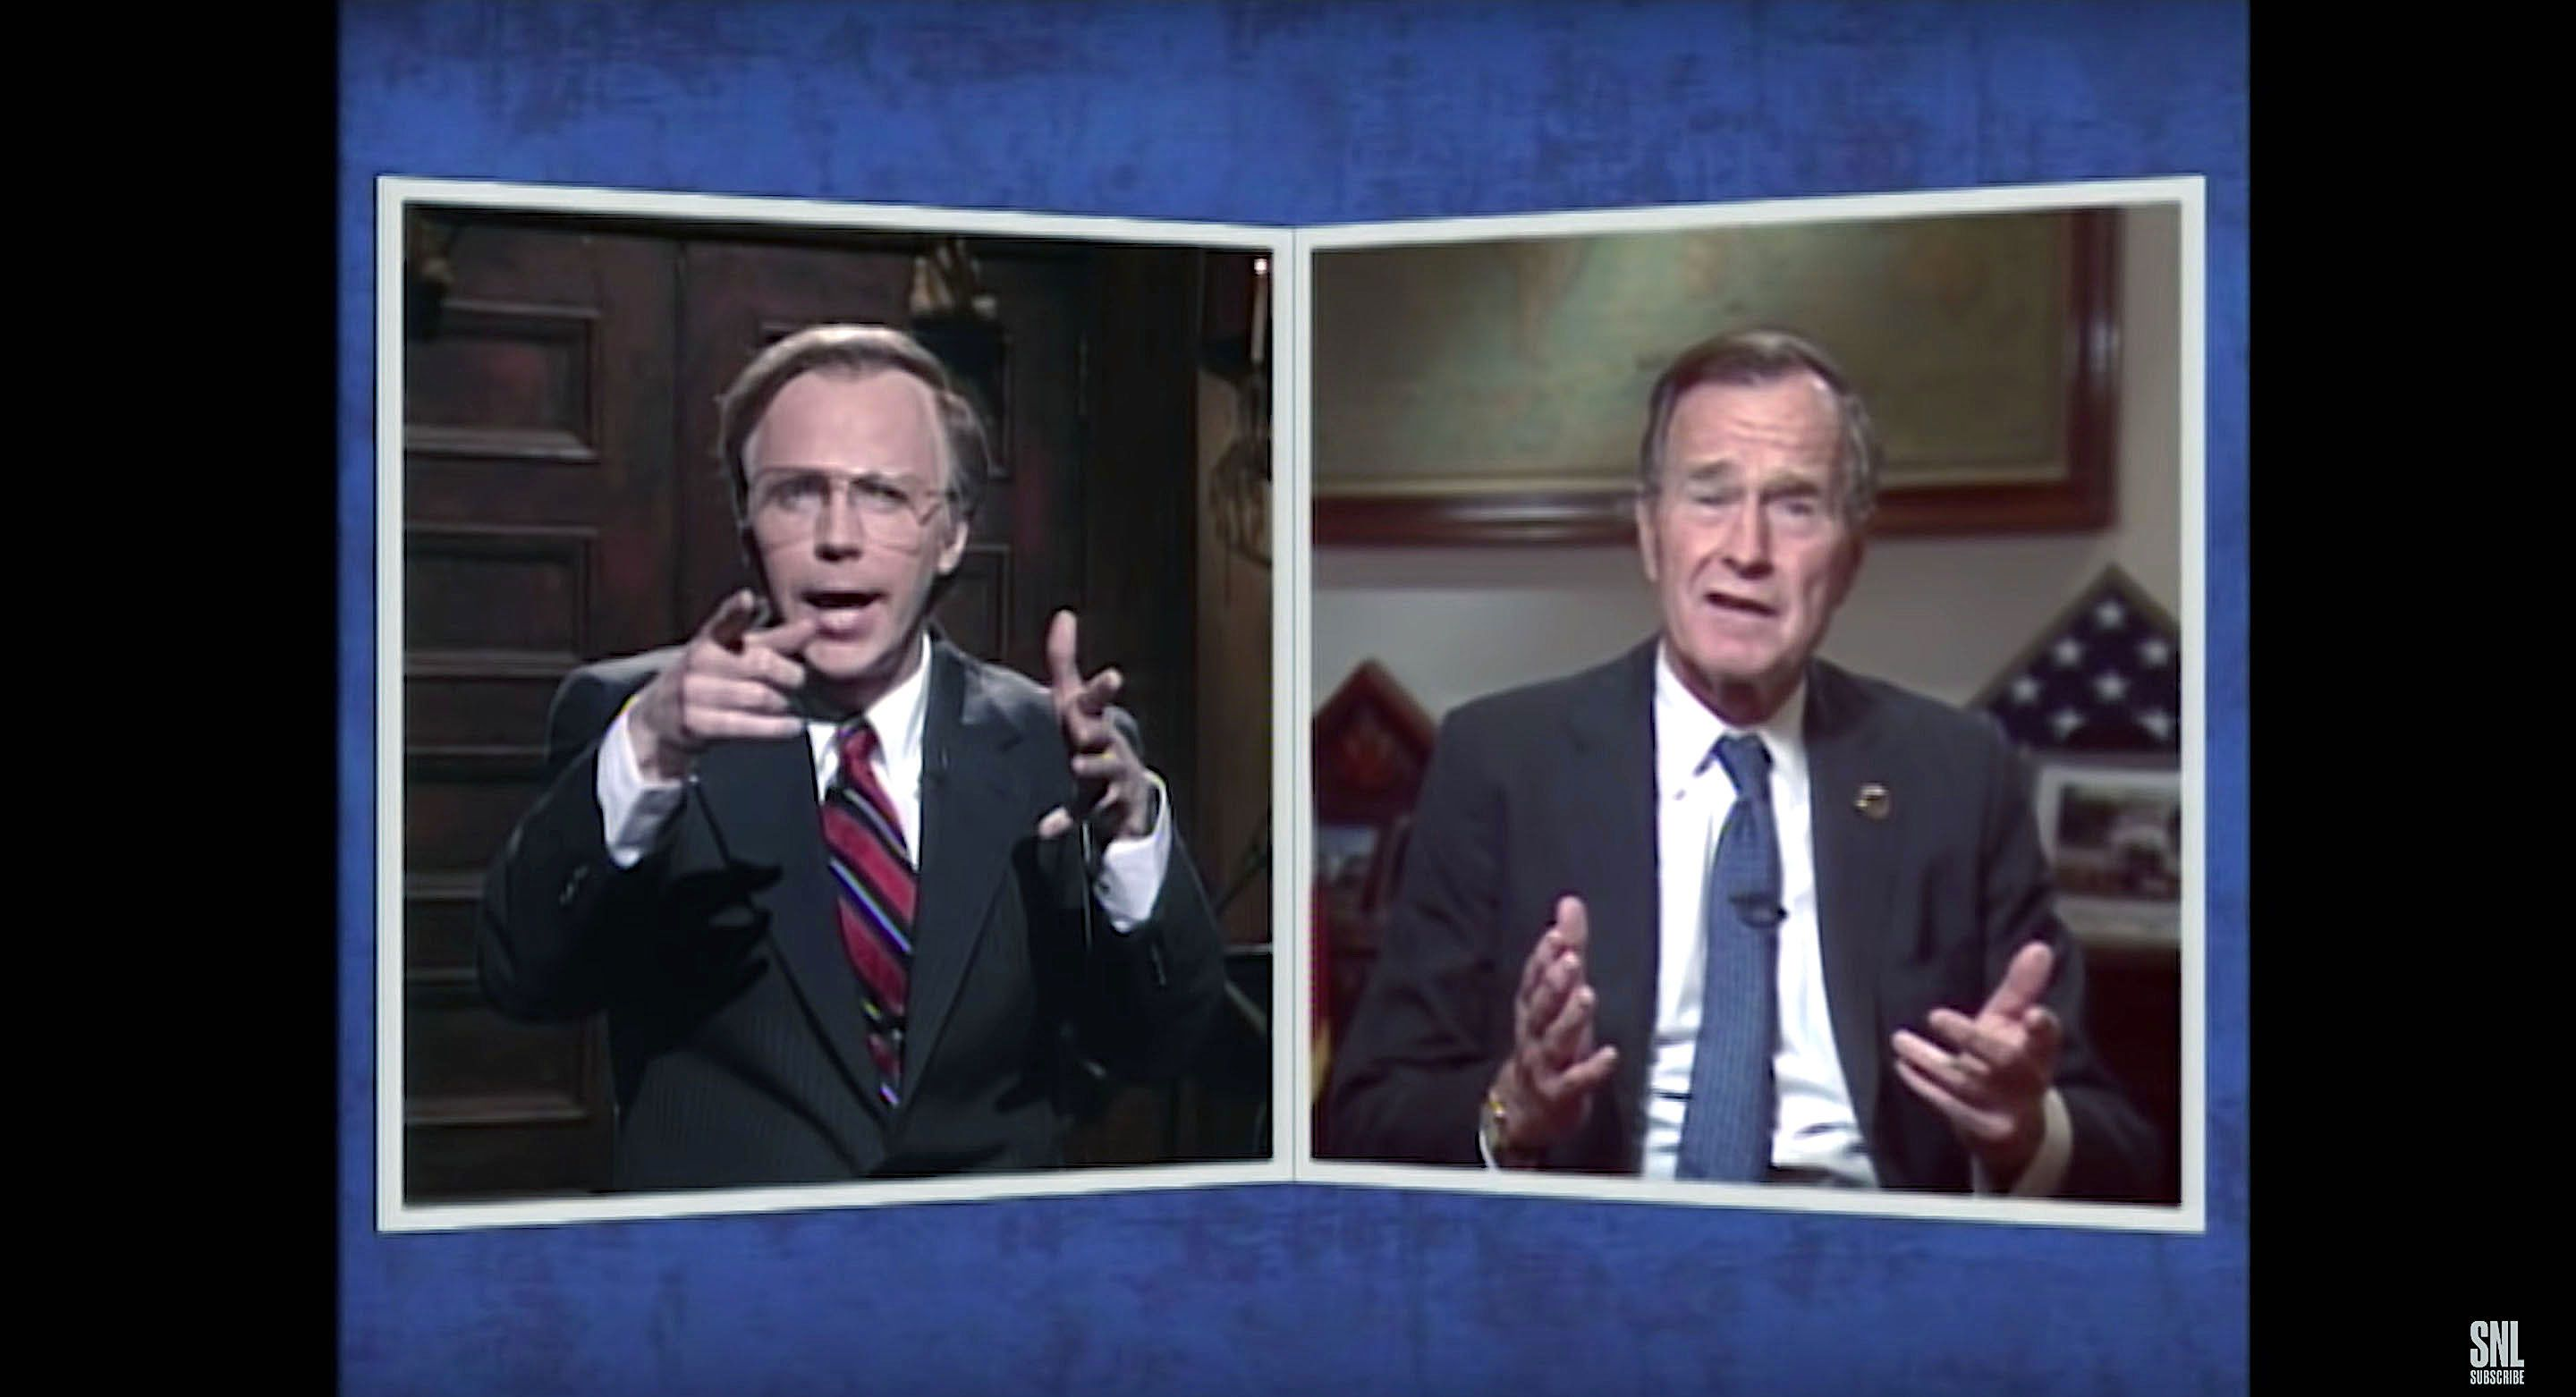 'SNL' Pays Tribute To George H.W. Bush's Sense Of